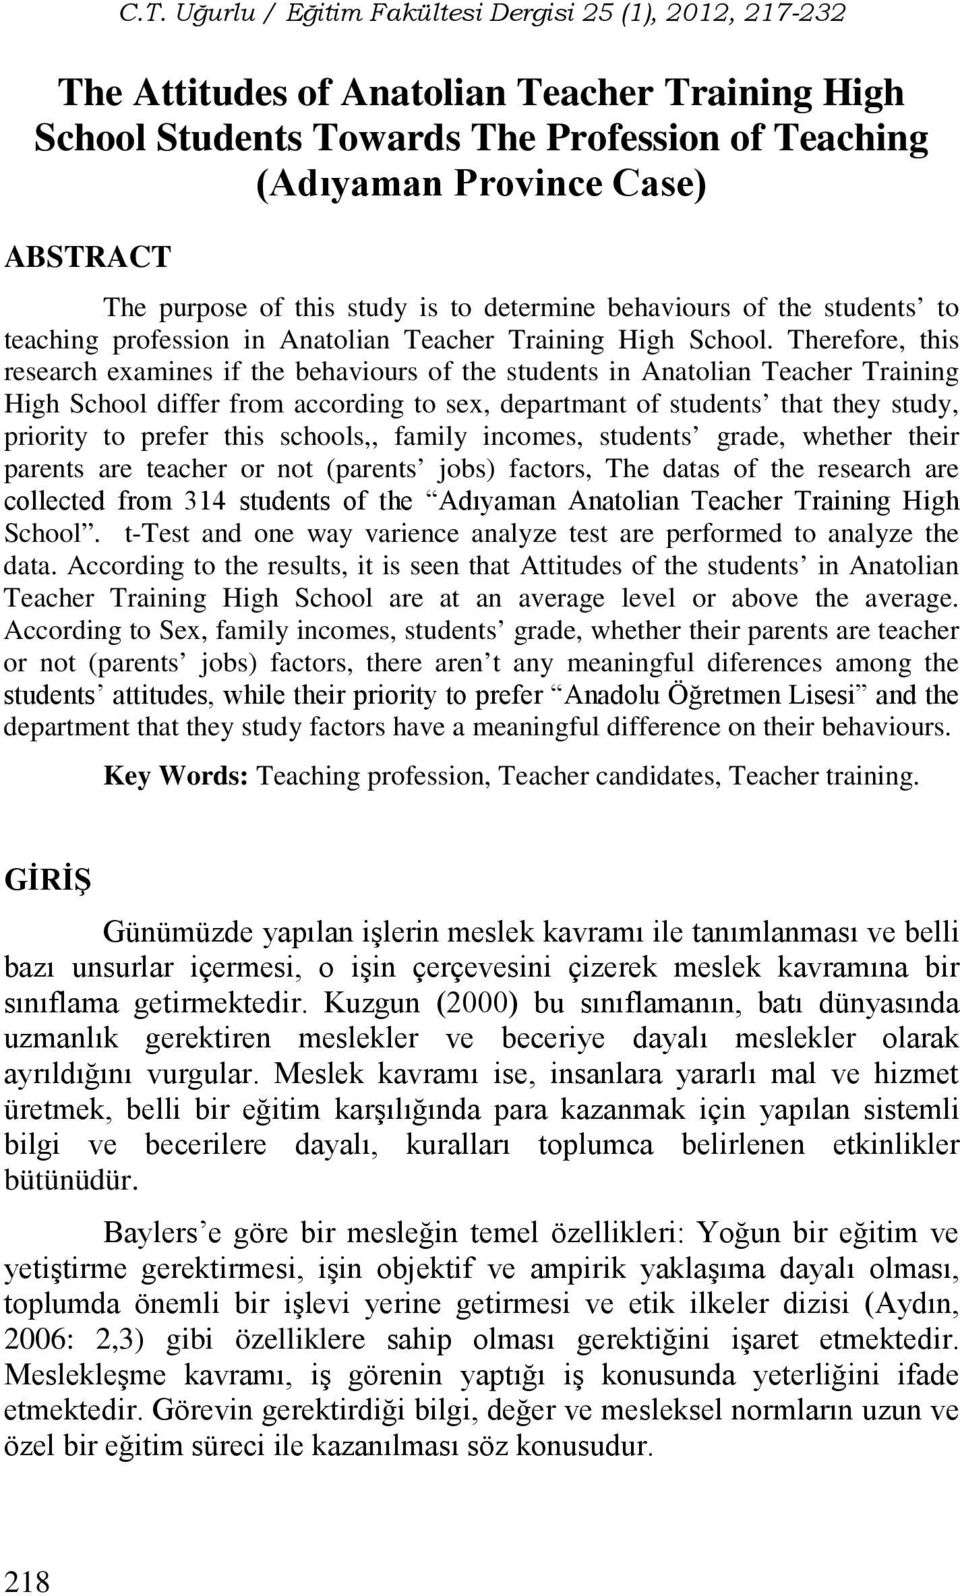 Therefore, this research examines if the behaviours of the students in Anatolian Teacher Training High School differ from according to sex, departmant of students that they study, priority to prefer